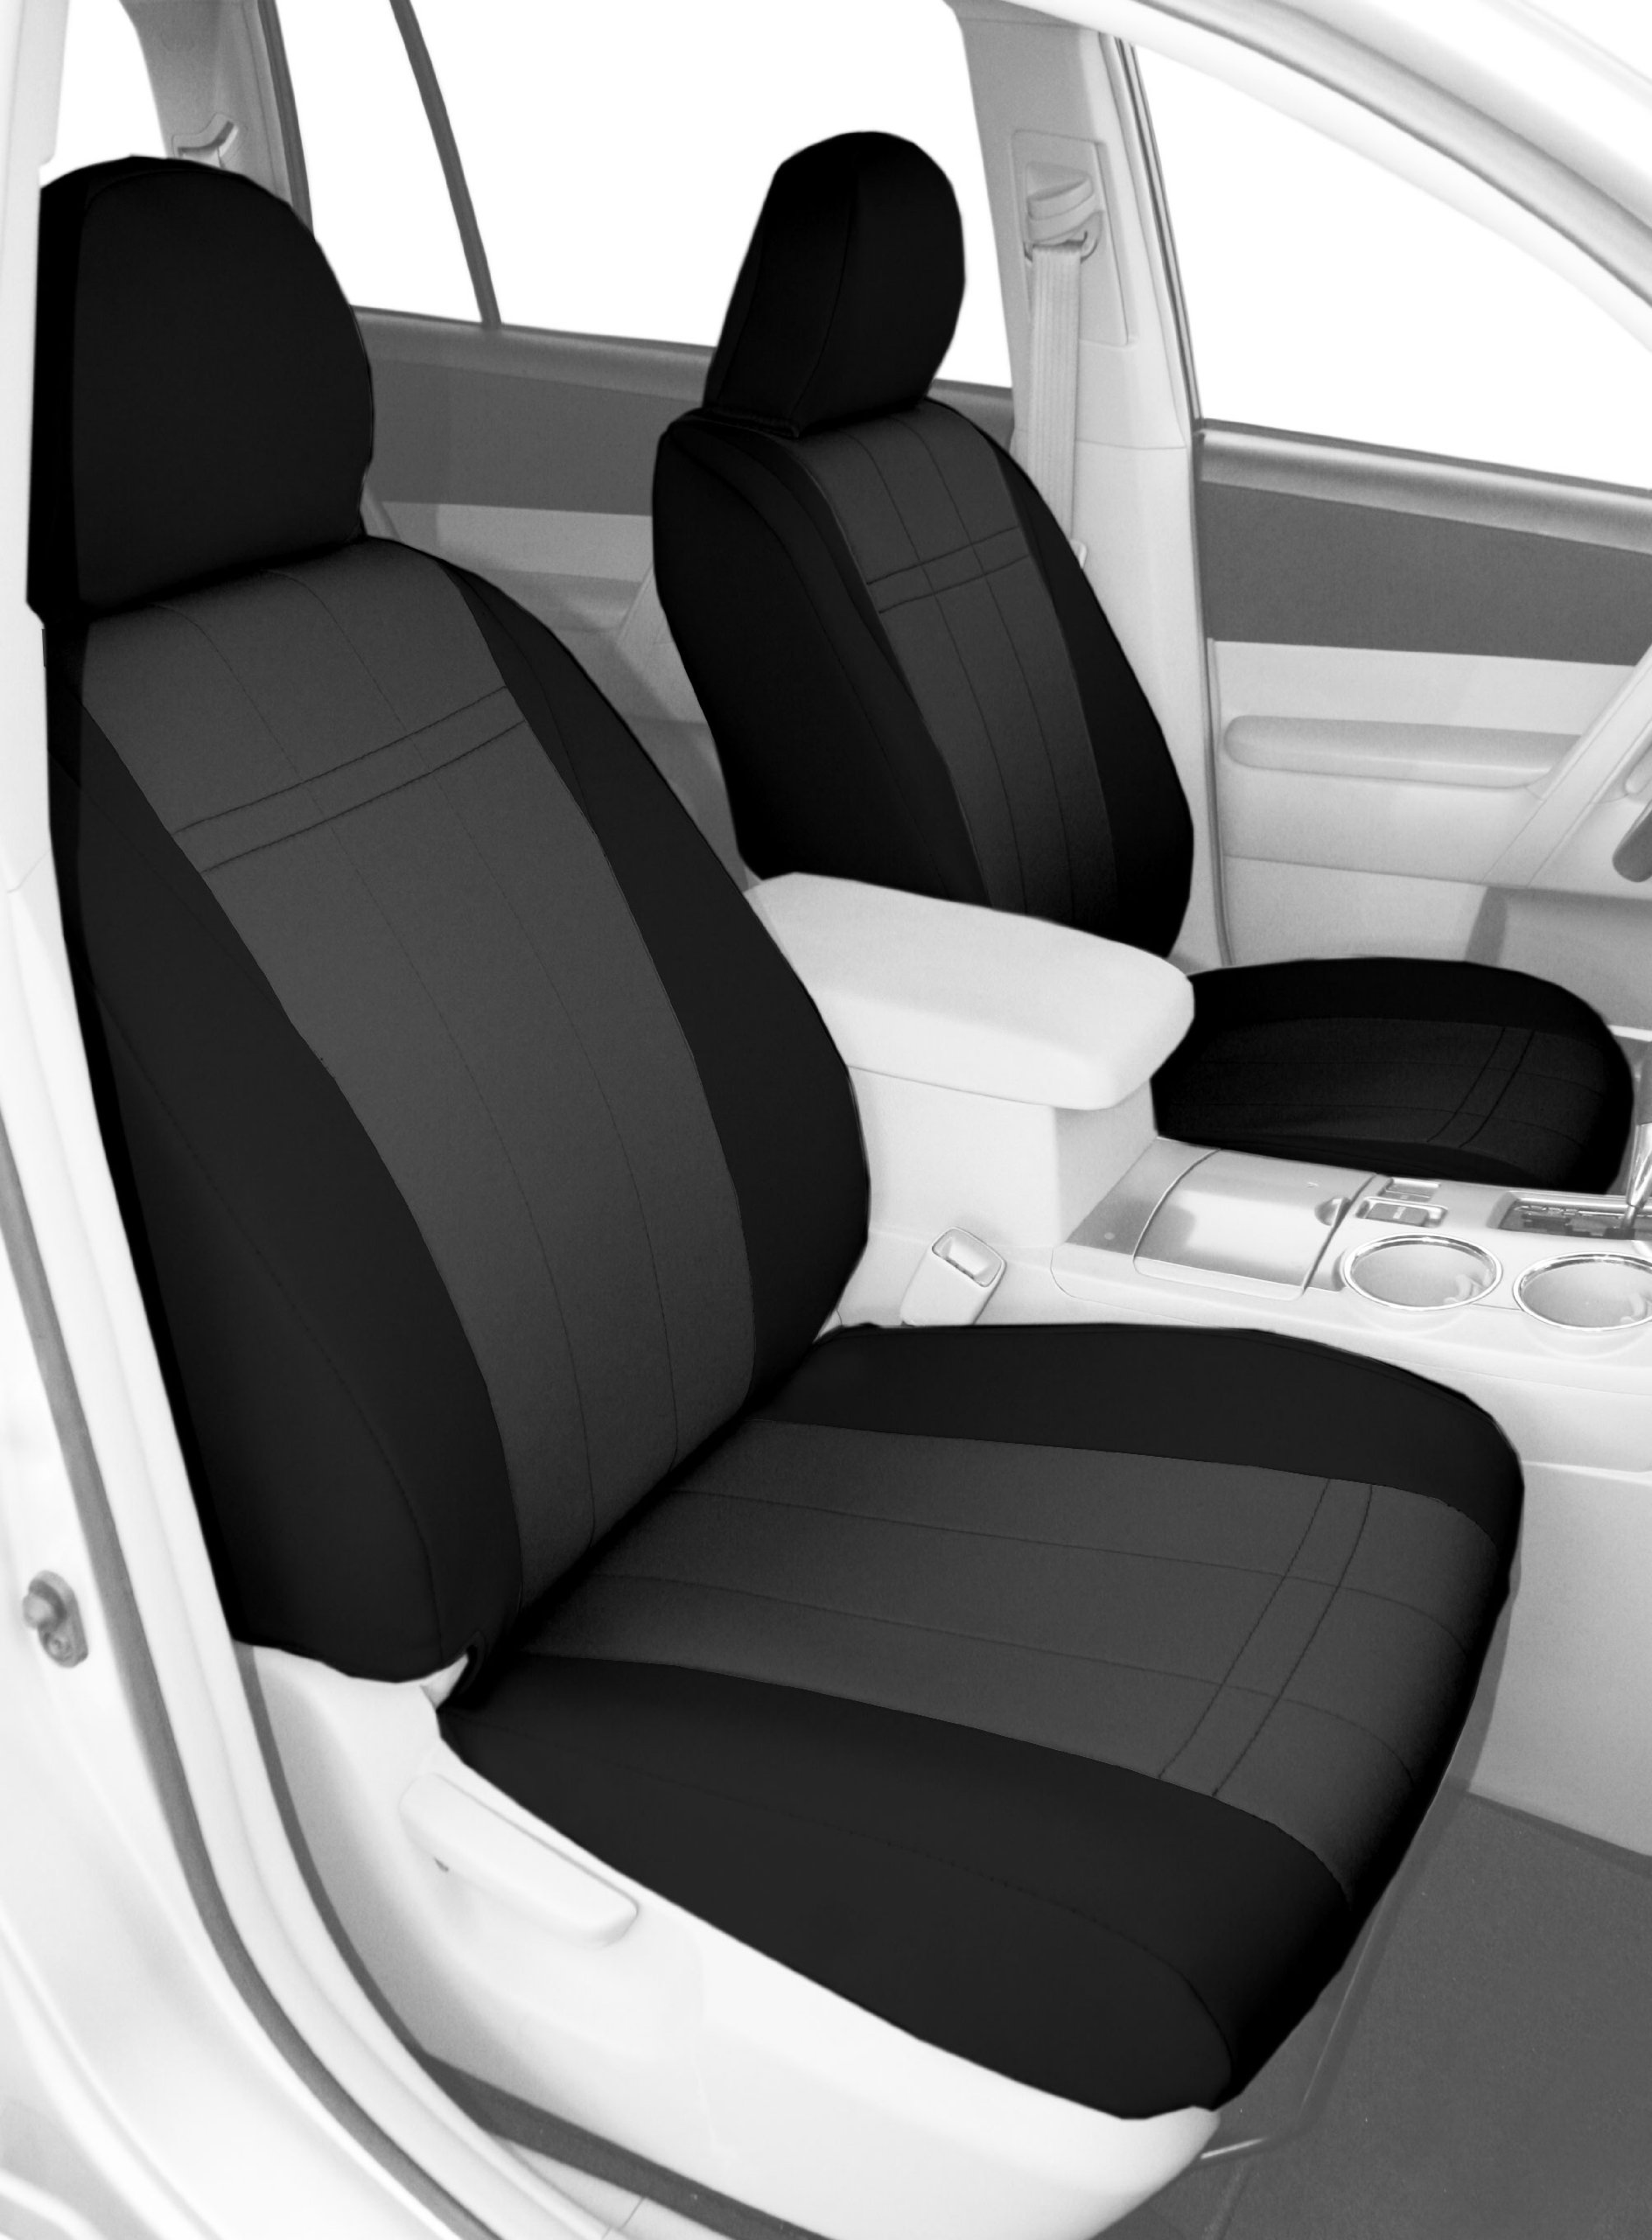 CalTrend Front Row Bucket Custom Fit Seat Cover for Select Toyota 4Runner Models - Neoprene (Charcoal Insert with Black Trim)